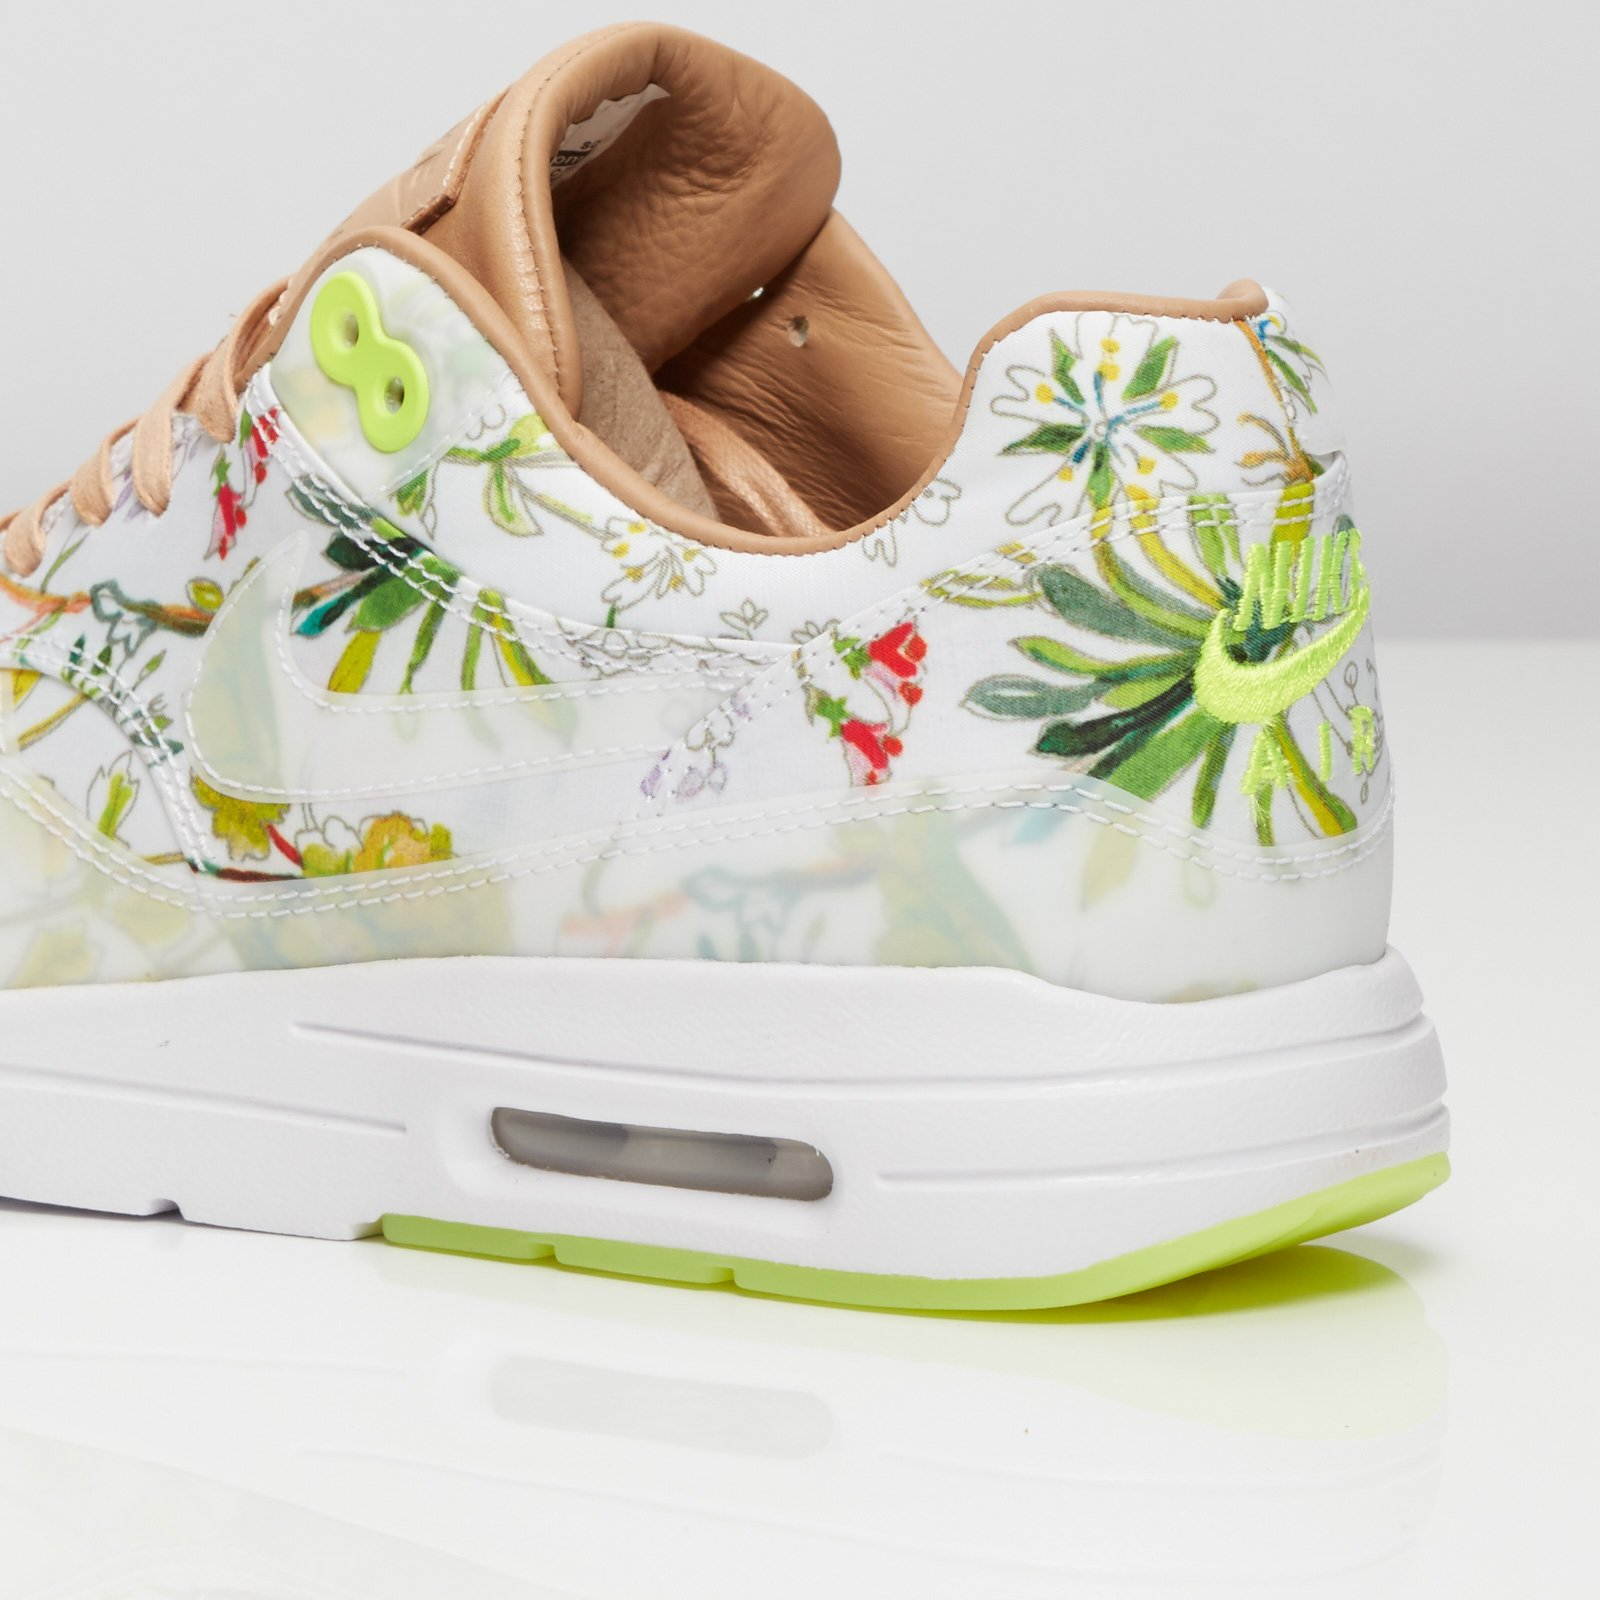 best website 7eb4a 7a274 ... Nike Wmns Air Max 1 Ultra LIB QS ...